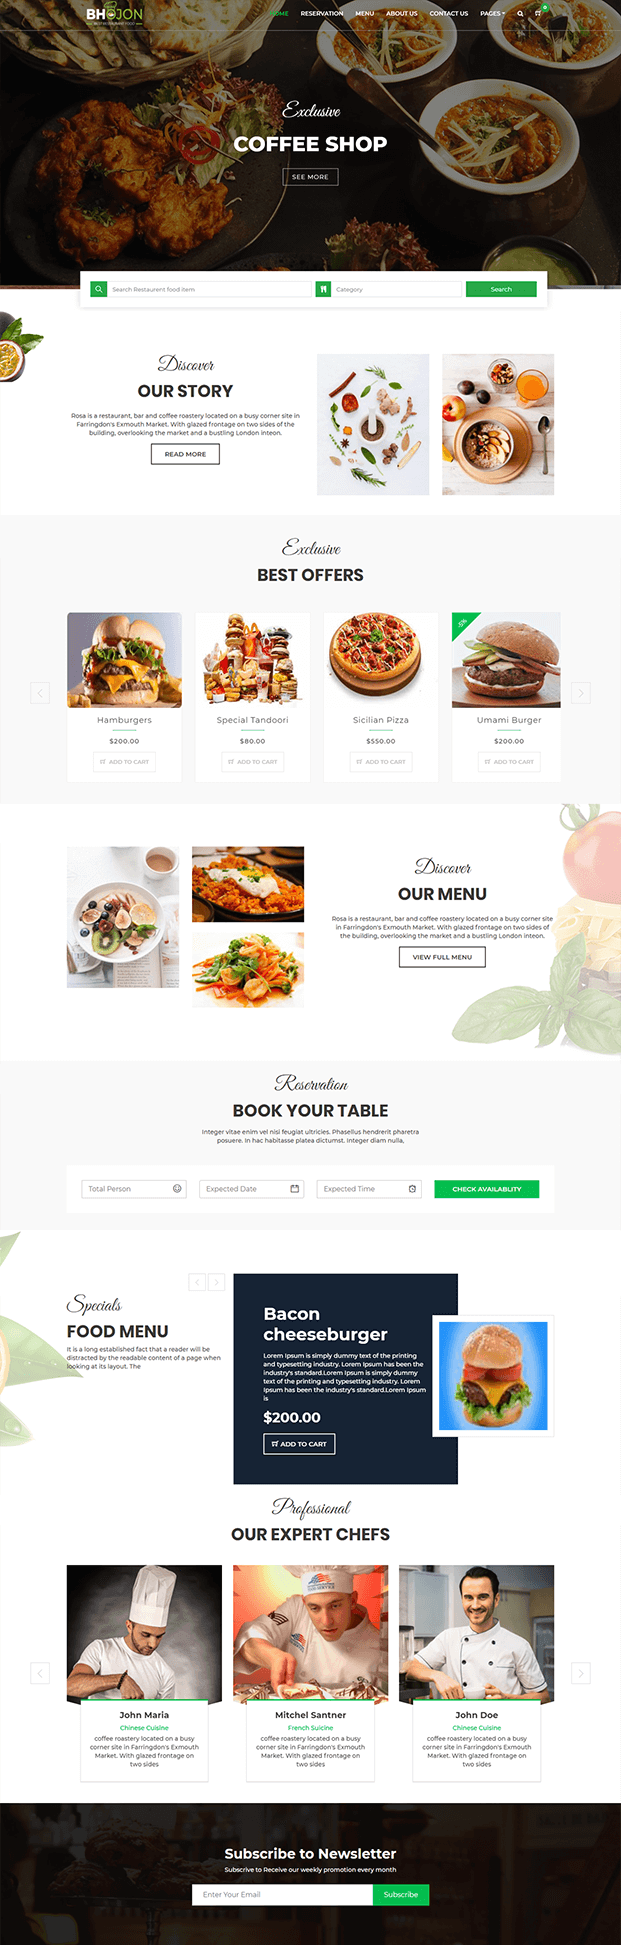 Home - Restaurant Management Software